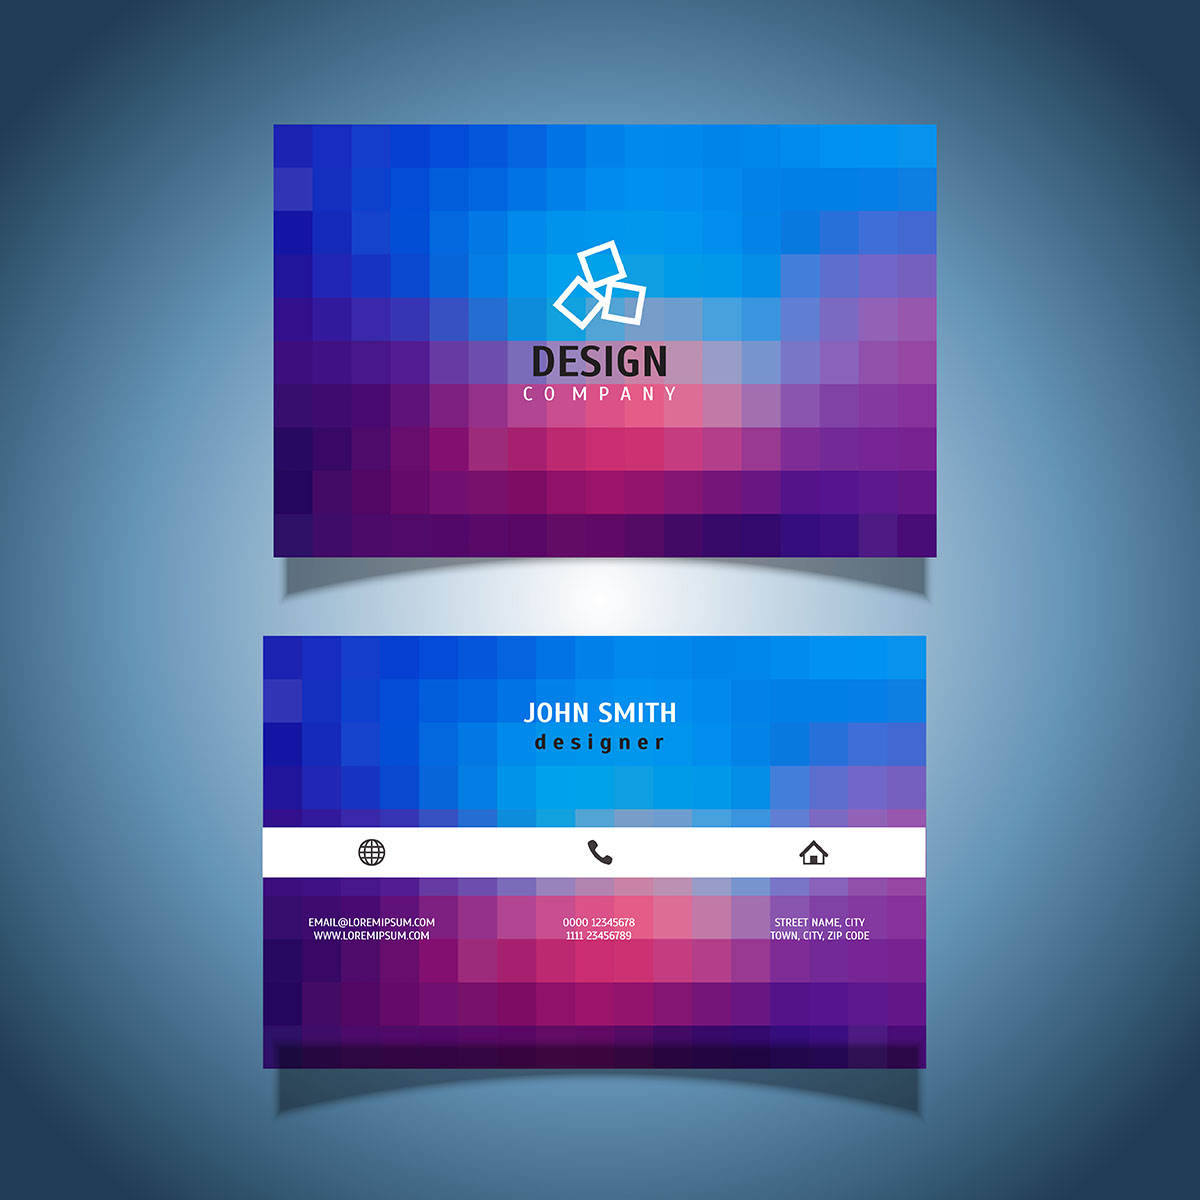 free vector business card templates 52474 free downloads